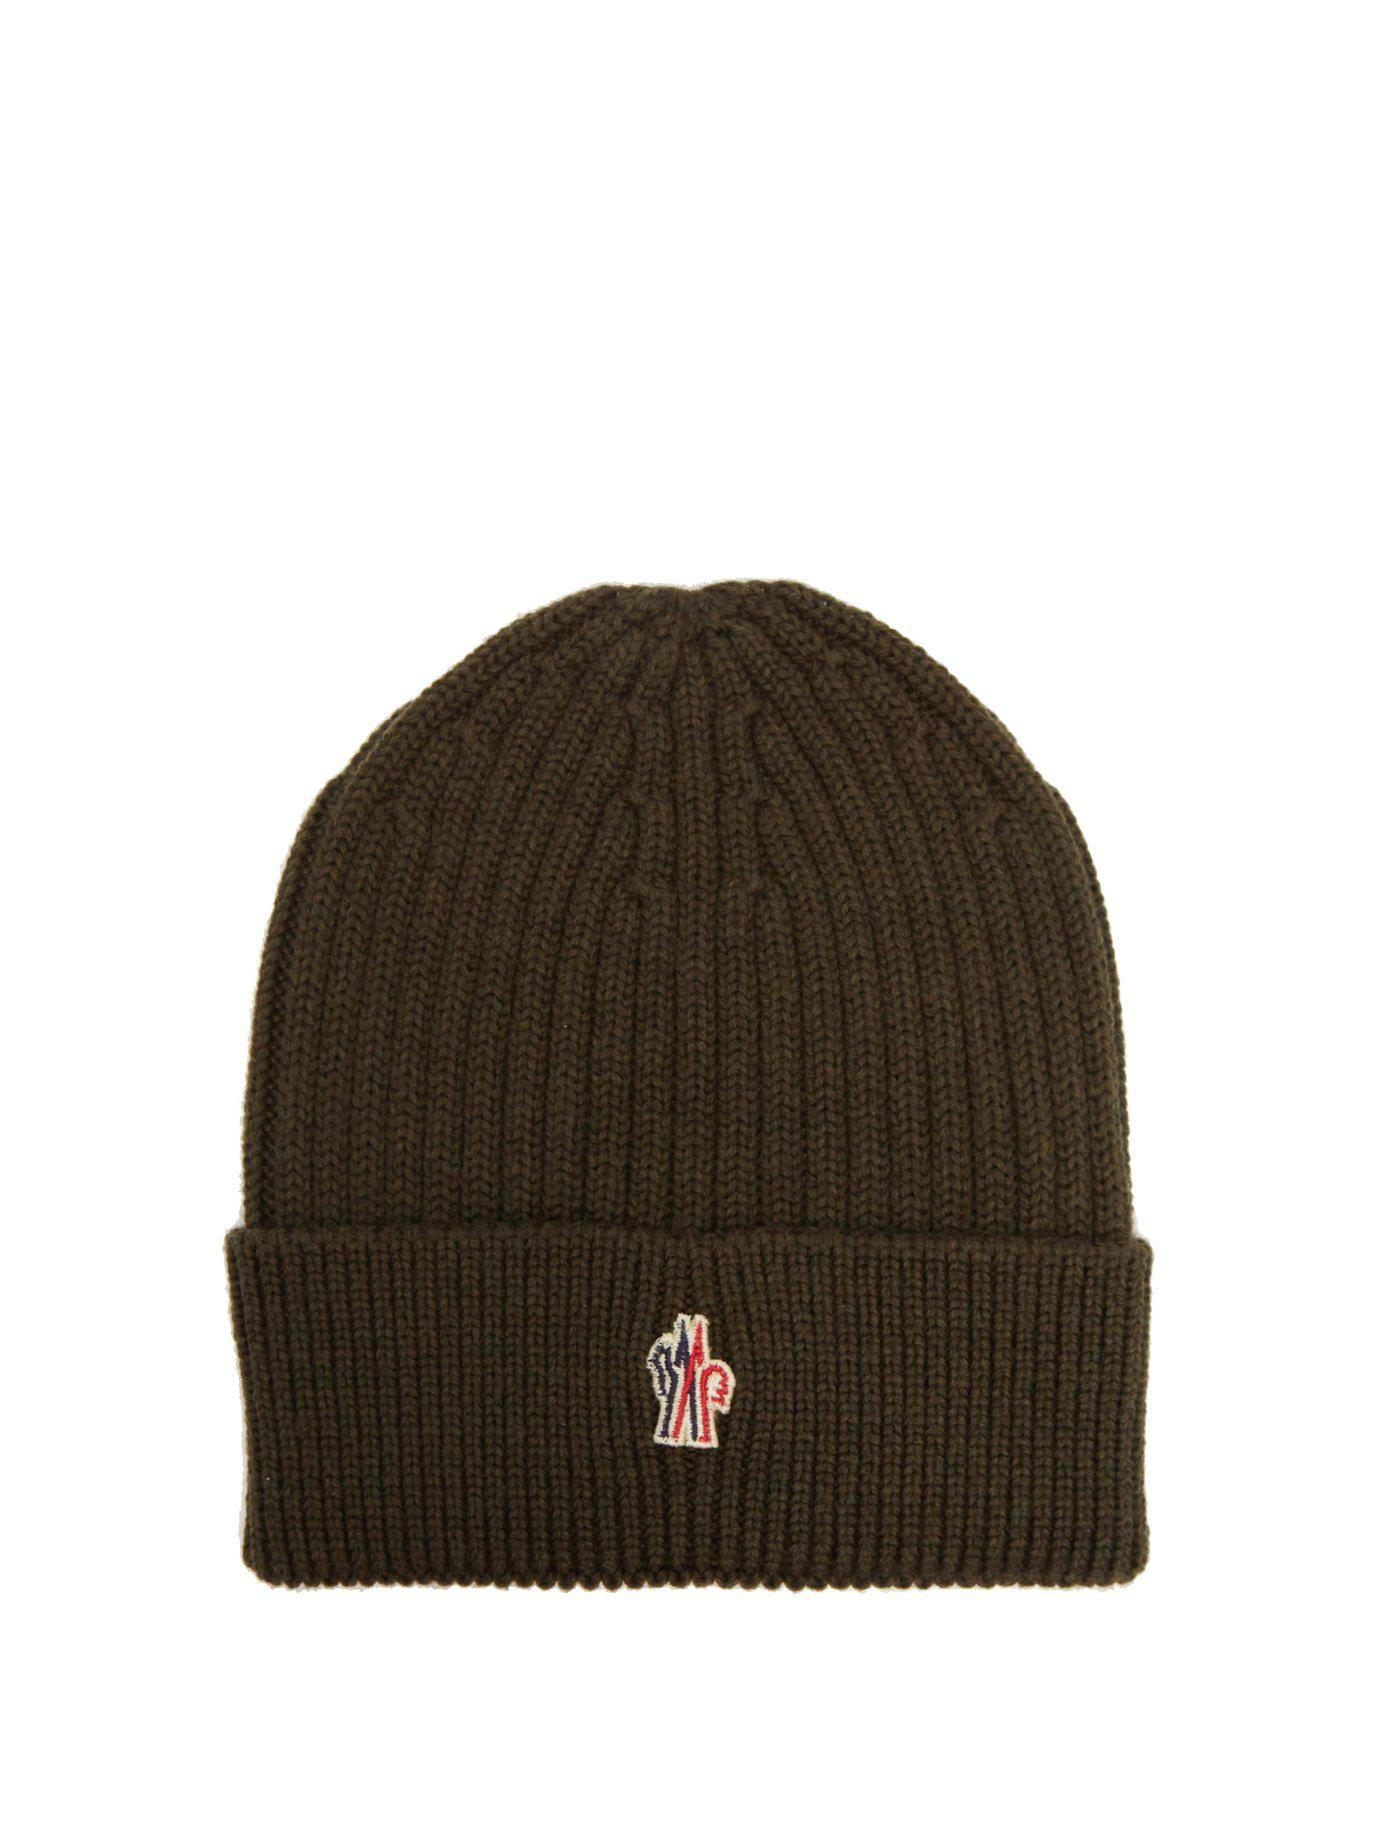 Lyst - Moncler Grenoble Logo Embroidered Wool Beanie Hat for Men 8ad3739ffeaa